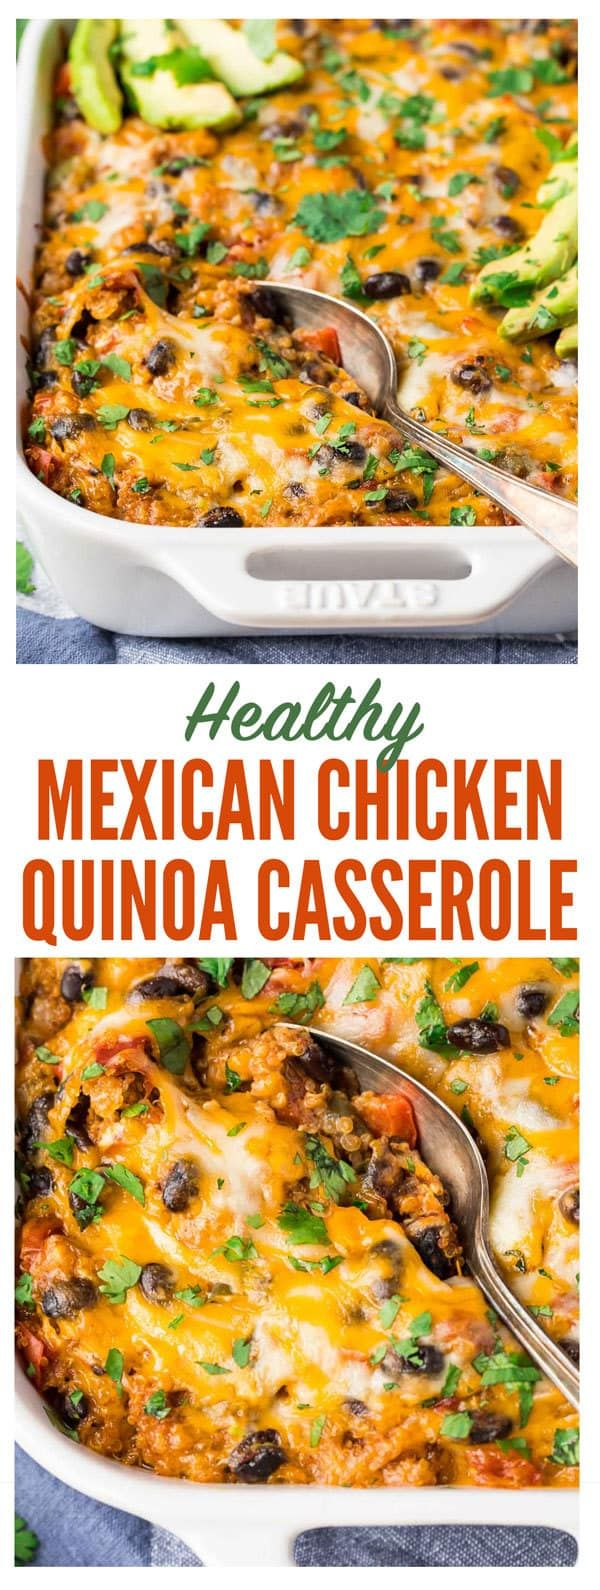 A healthy, easy Mexican chicken casserole recipe your entire family will love! Made with quinoa or with rice, fresh veggies, black beans, and cheese, this creamy, cheesy Mexican casserole has received dozens of glowing reviews! #healthy #glutenfree #mexicanchicken #casserole #healthy